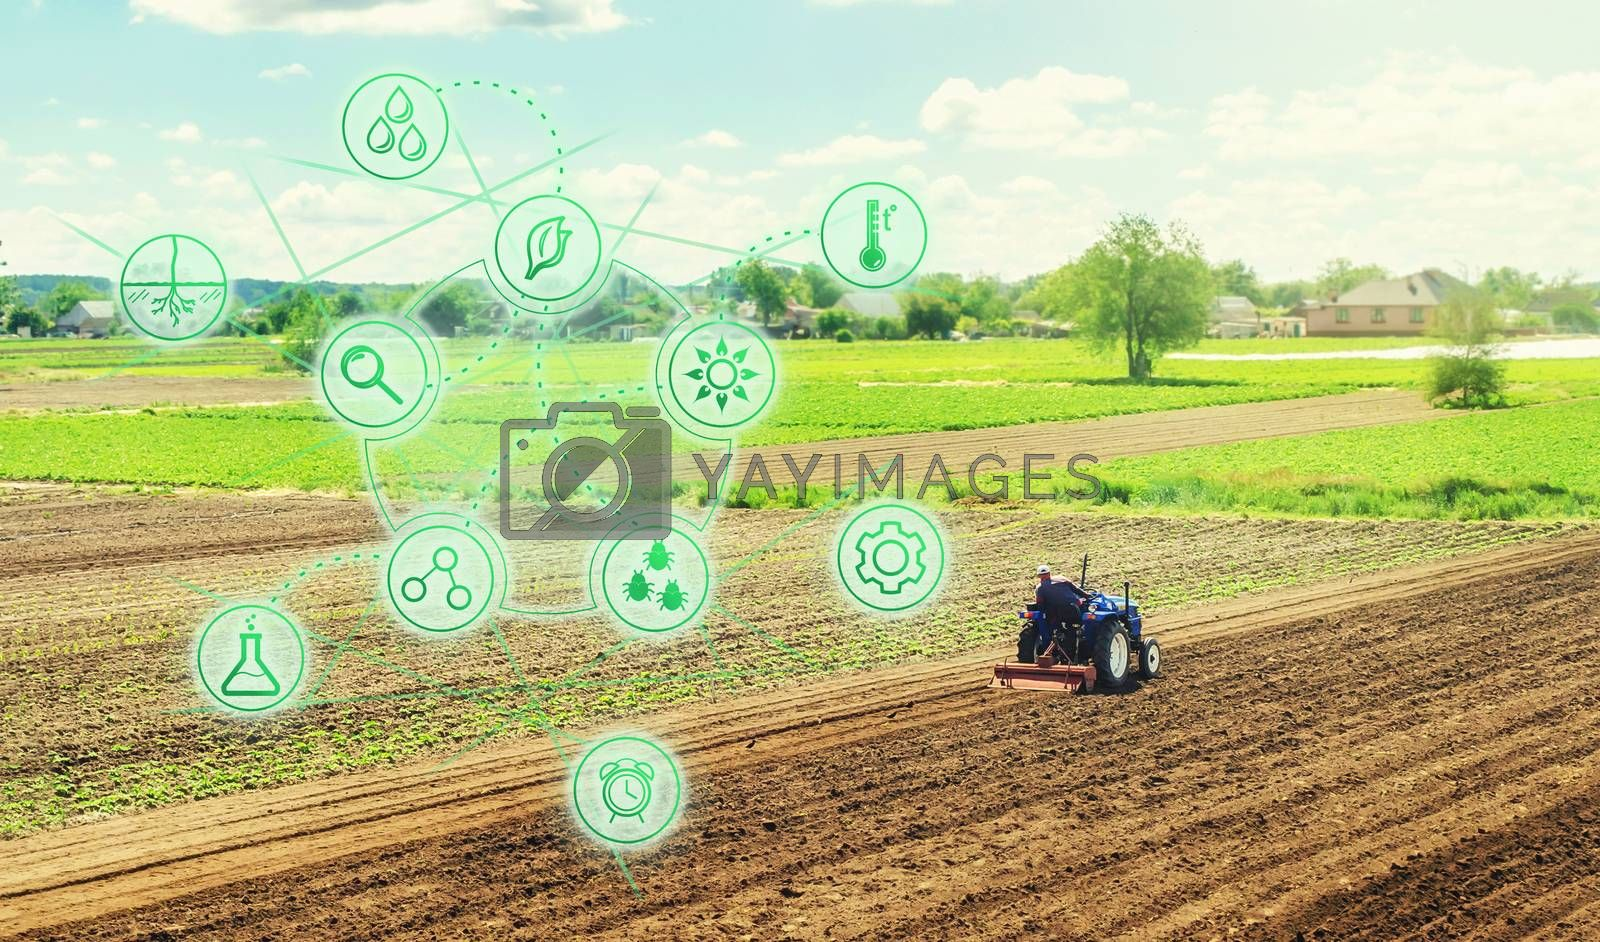 Futuristic innovative technology pictogram and a farmer on a tractor. Science of agronomy. Farming and agriculture startups. Improving efficiency. Technology Improvement in quality and yield growth. by iLixe48